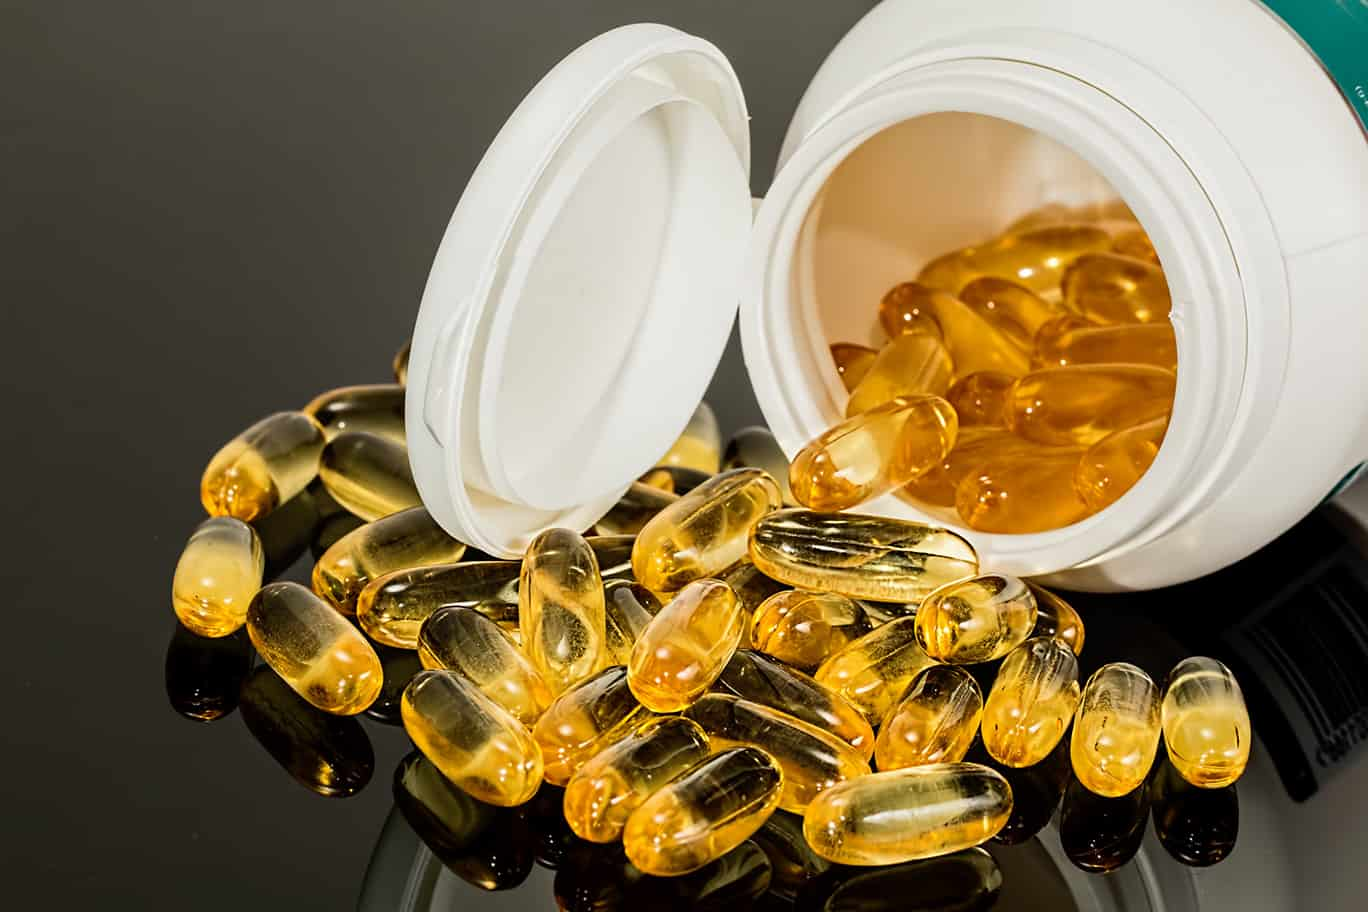 Fish Oil - A commonly used supplement